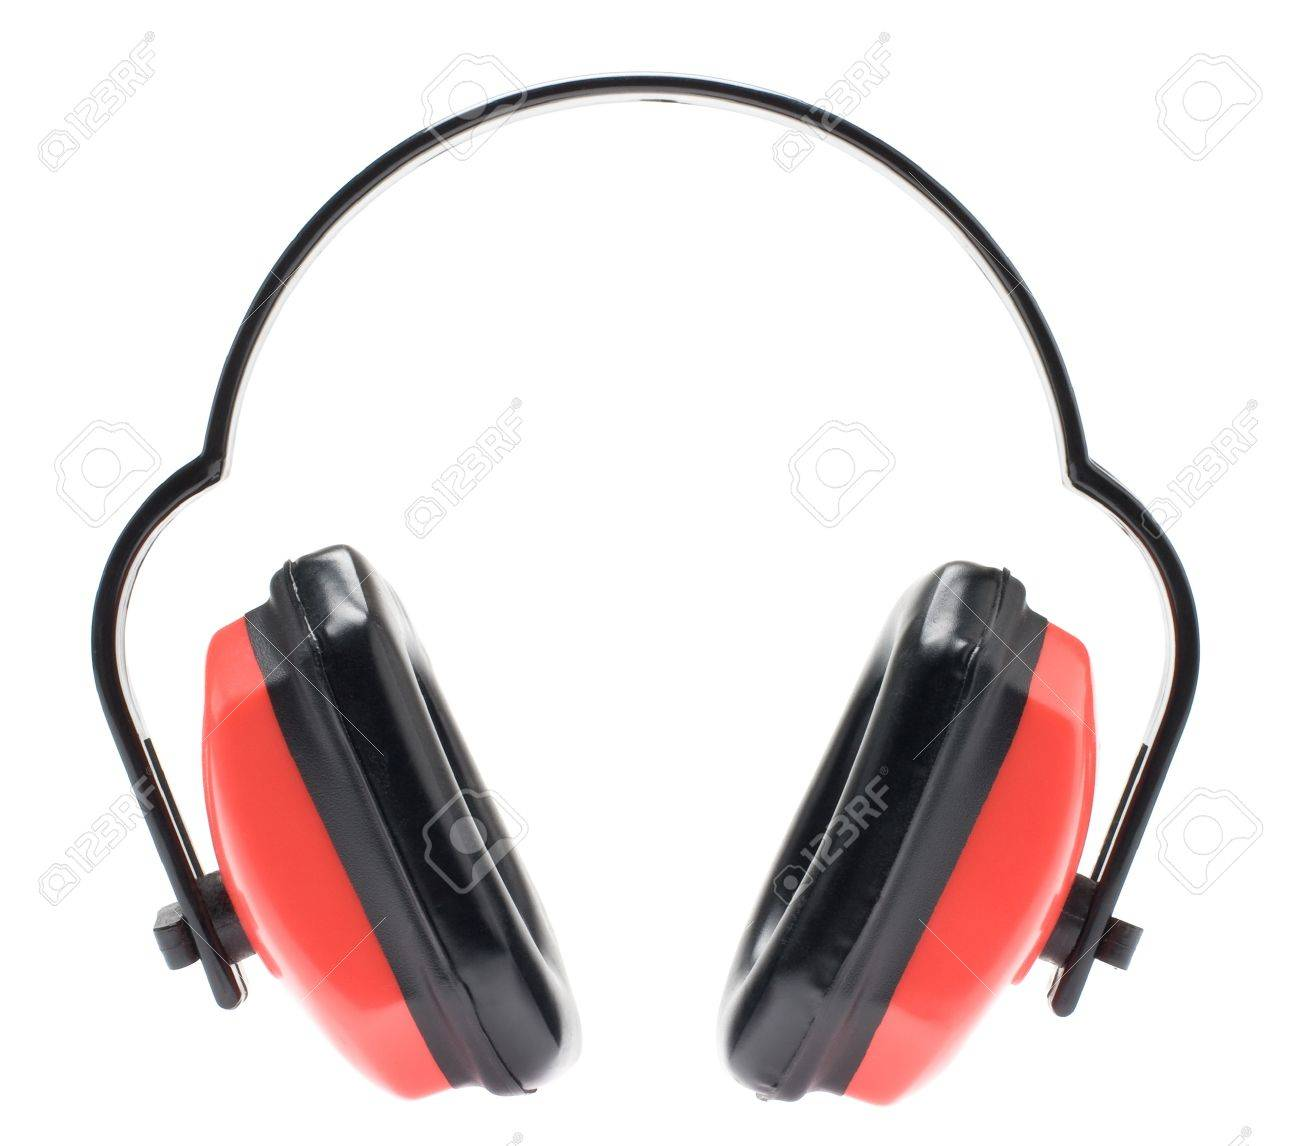 headphones for hearing protection Stock Photo - 8599518